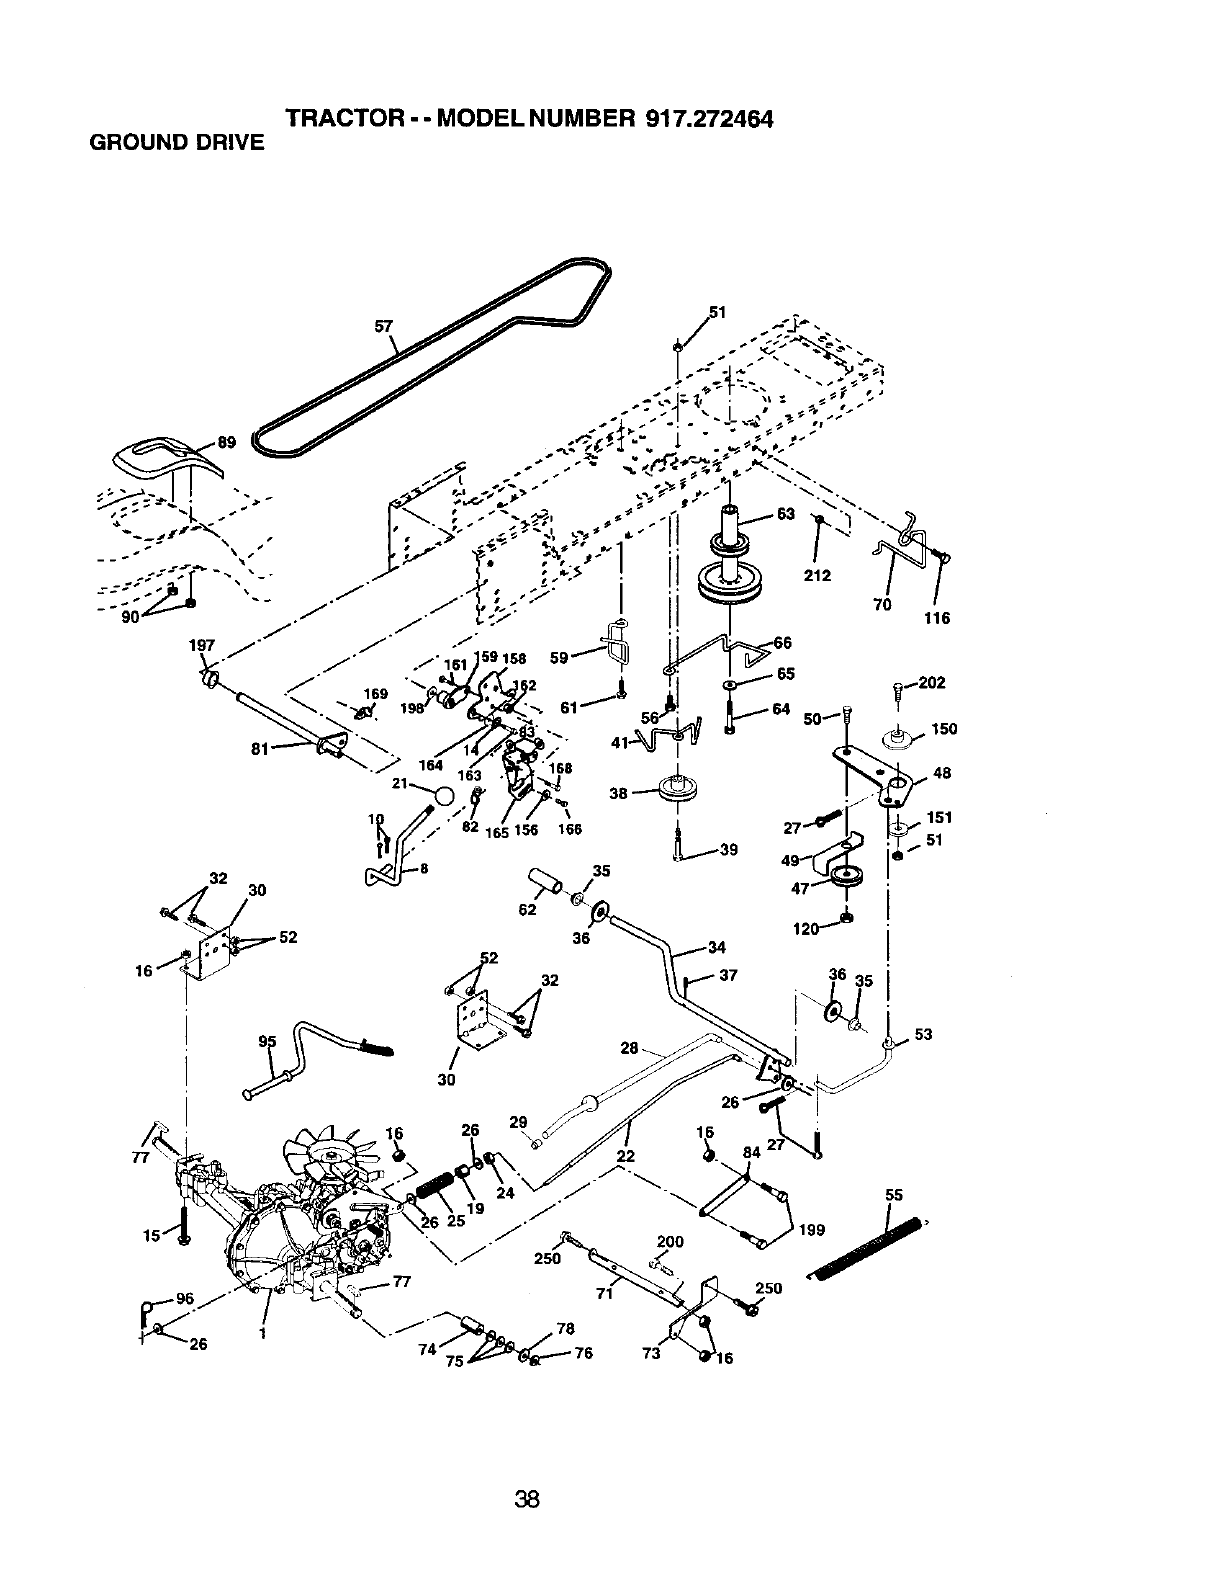 Page 38 of Craftsman Lawn Mower 917.272464 User Guide